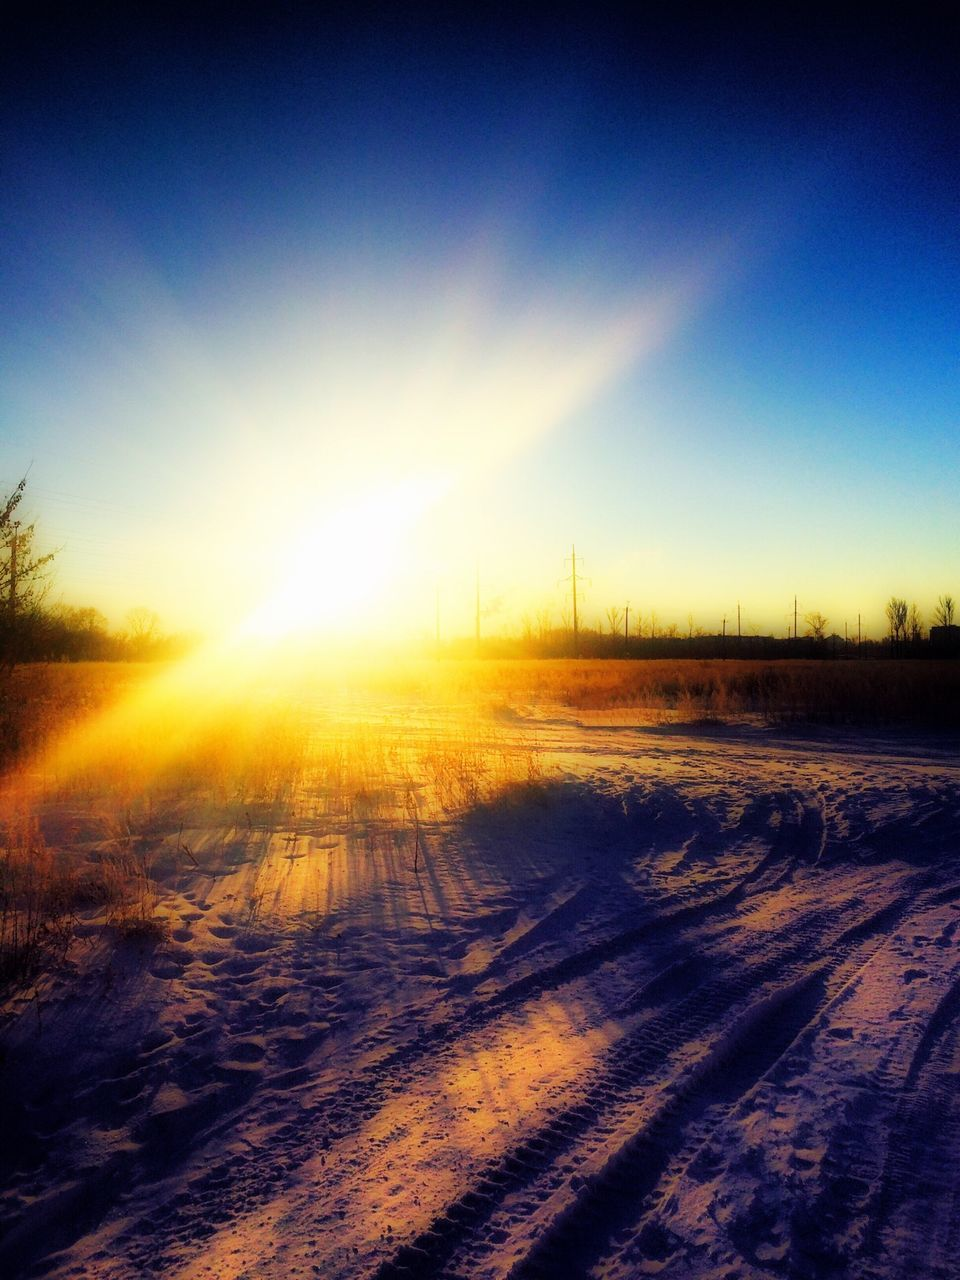 sunbeam, sun, winter, nature, sunlight, tranquil scene, cold temperature, tranquility, snow, sunset, landscape, scenics, no people, lens flare, beauty in nature, outdoors, field, sky, clear sky, day, vapor trail